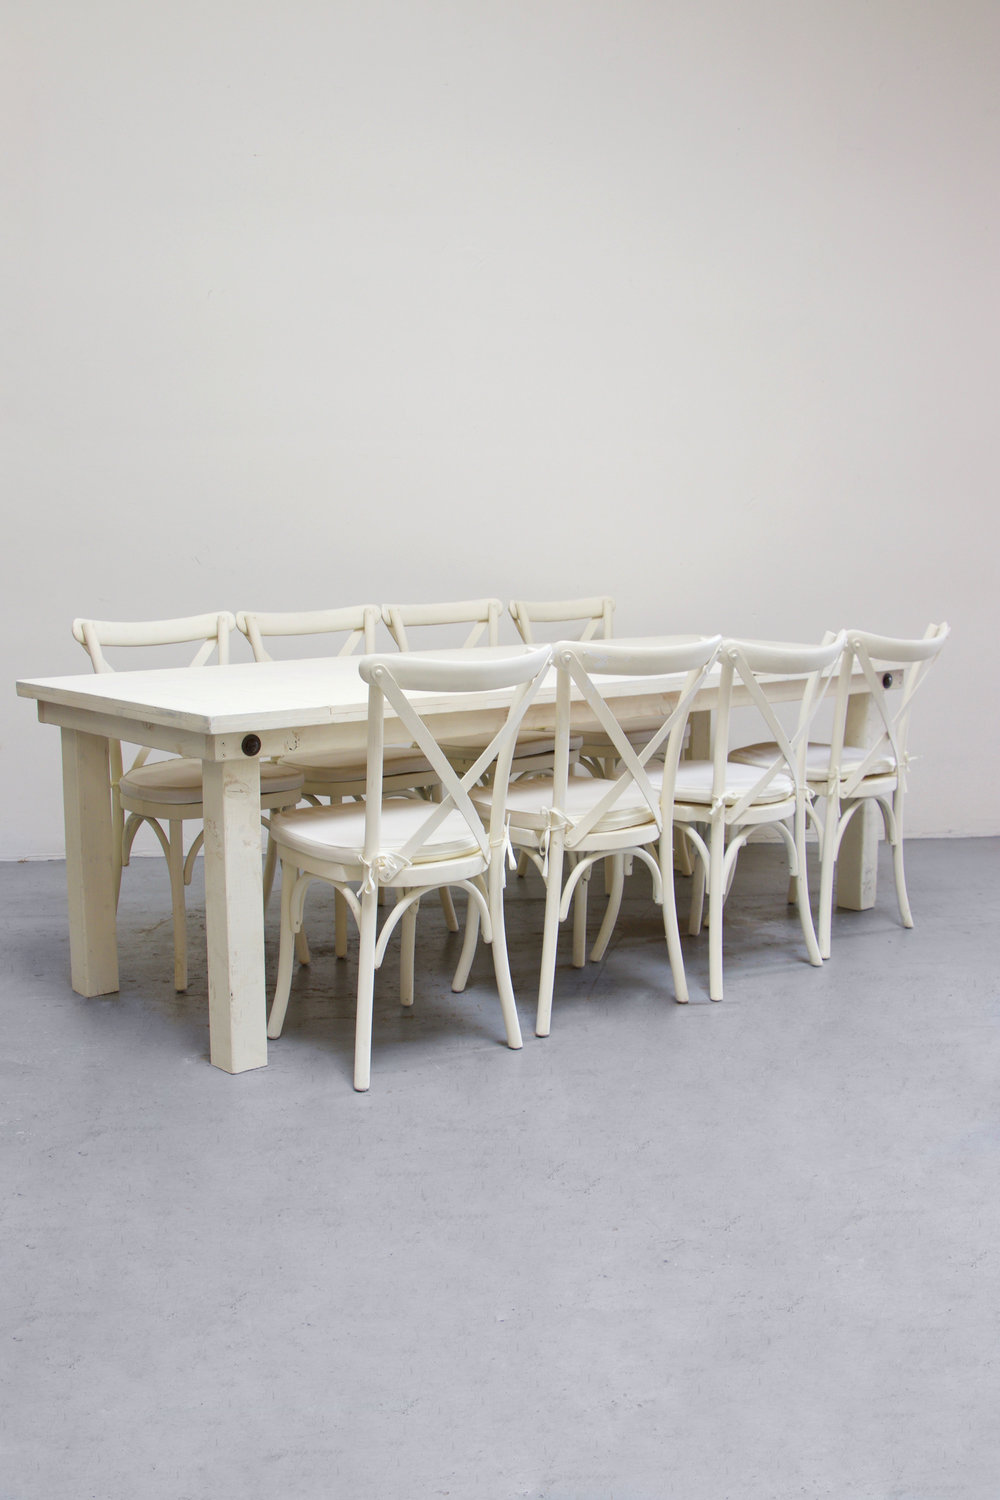 1 Vintage White Farm Table w/ 8 Cross-Back Chairs $145